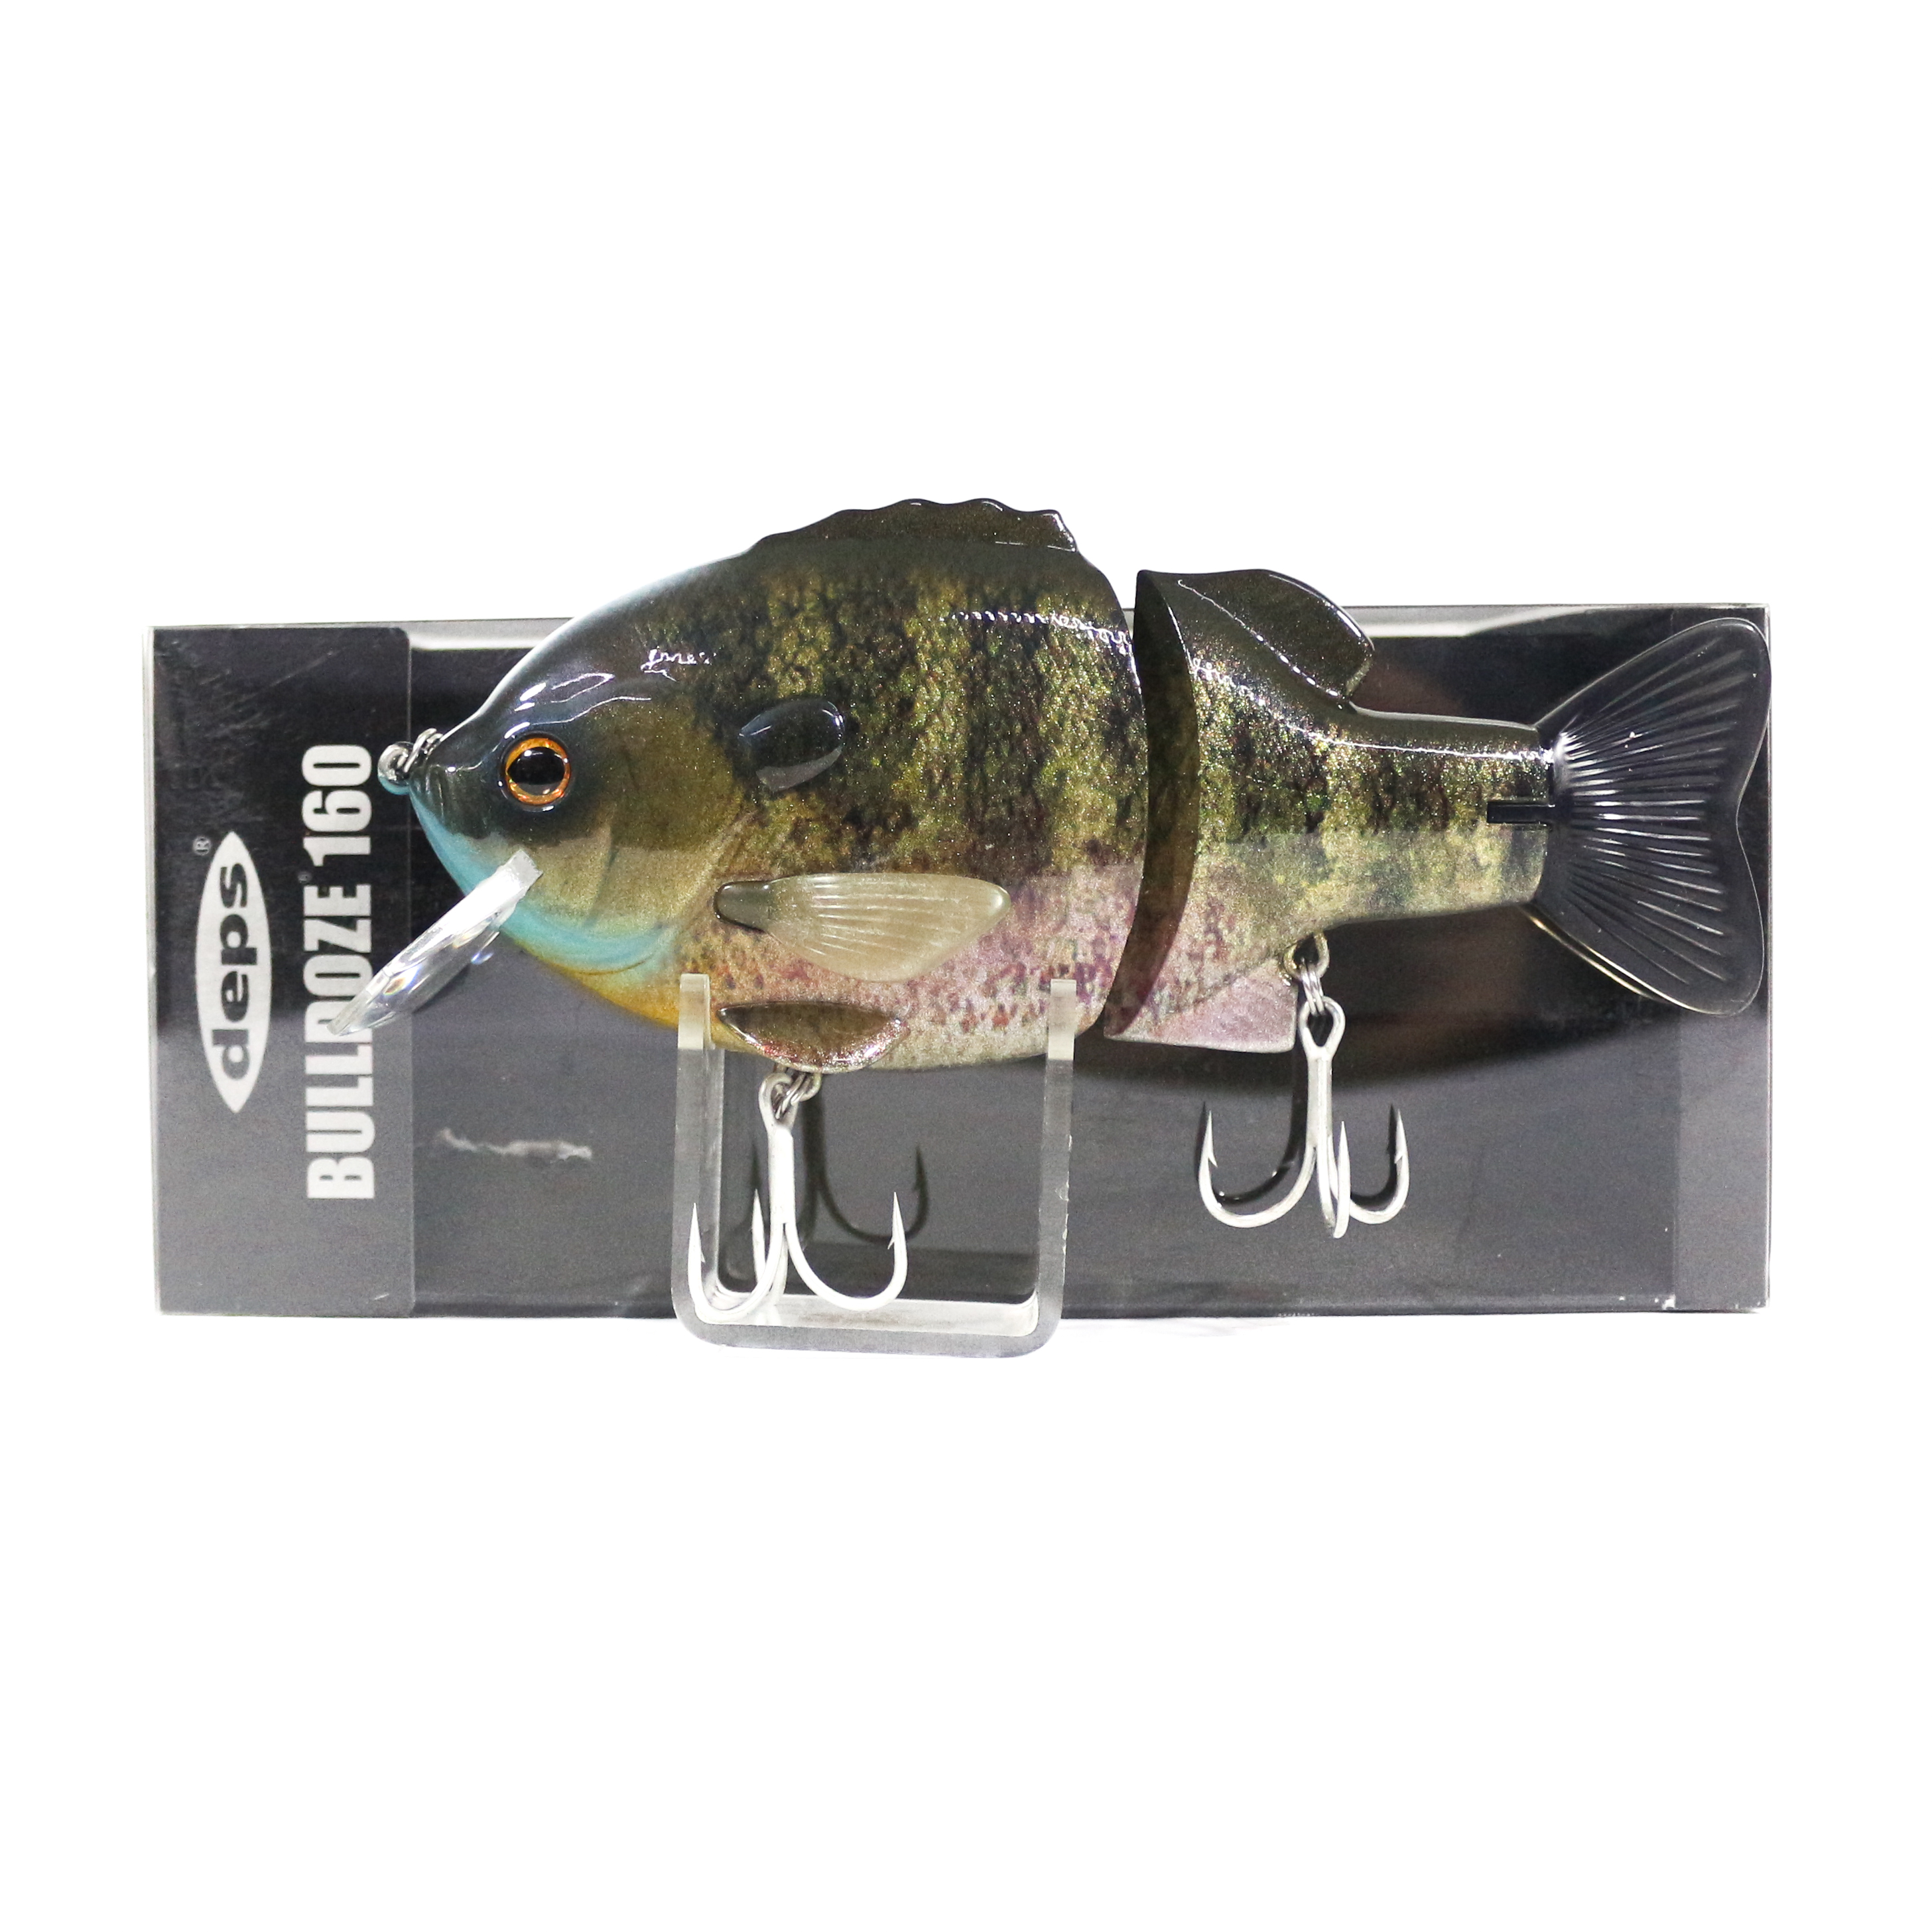 Deps Bulldoze Floating Lure 160mm 98 grams 01 (6014)